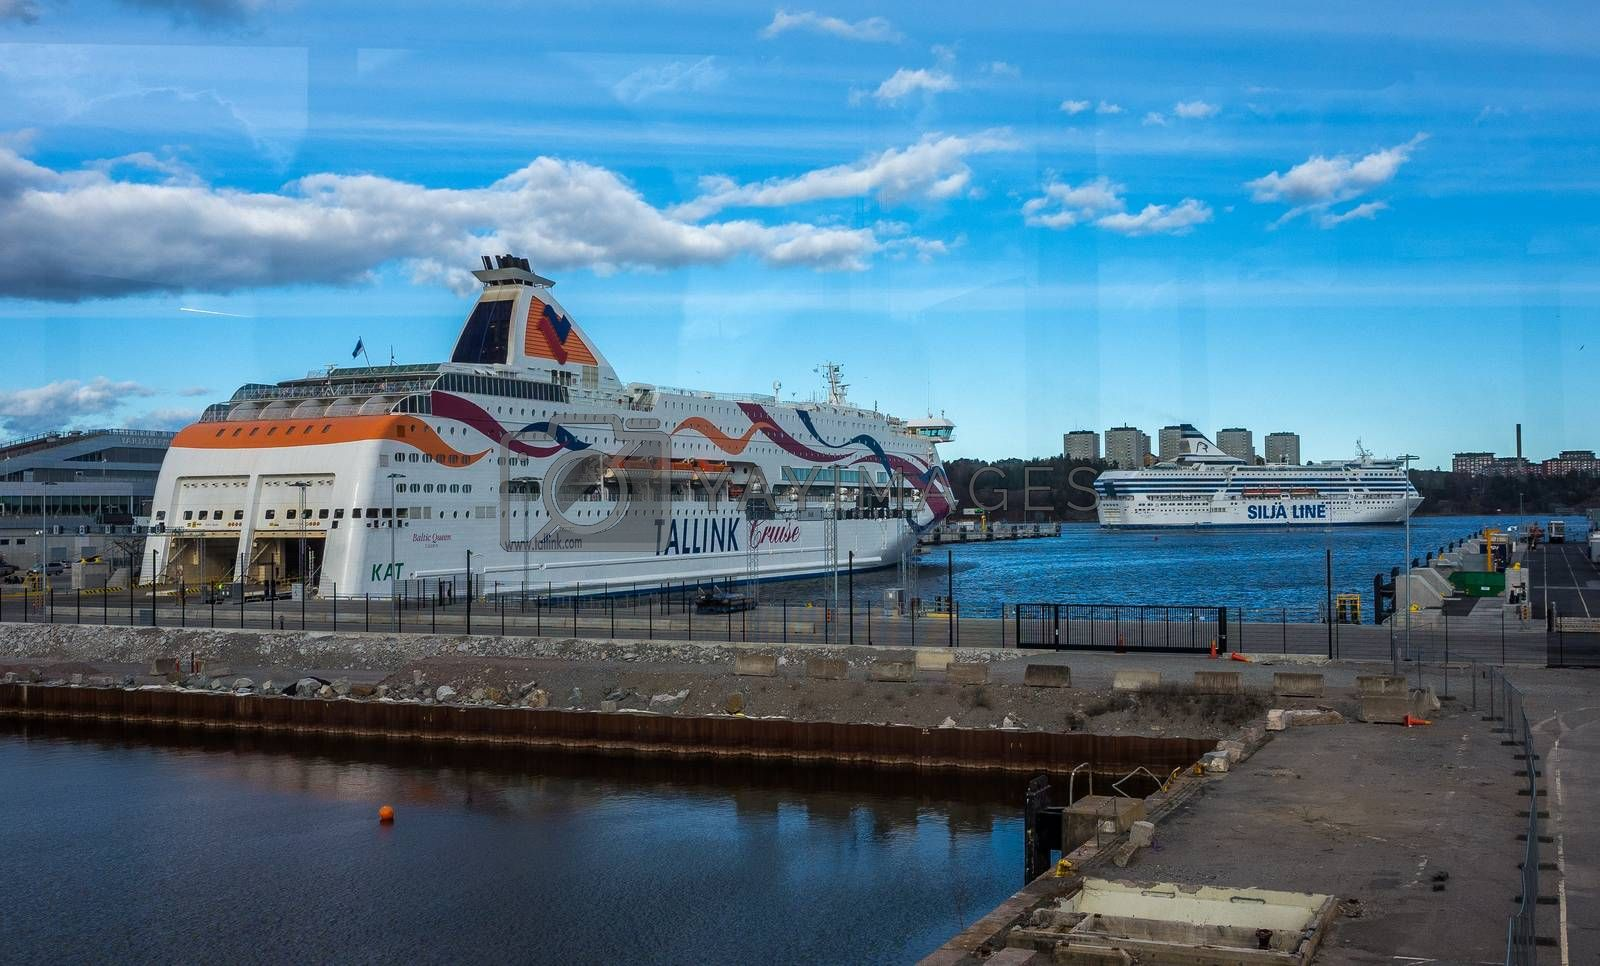 22 April 2019, Stockholm, Sweden. High-speed passenger and car ferrys of the Estonian shipping concern Tallink Silja Europa and Baltic Queen in the port Vartahamnen in Stockholm.